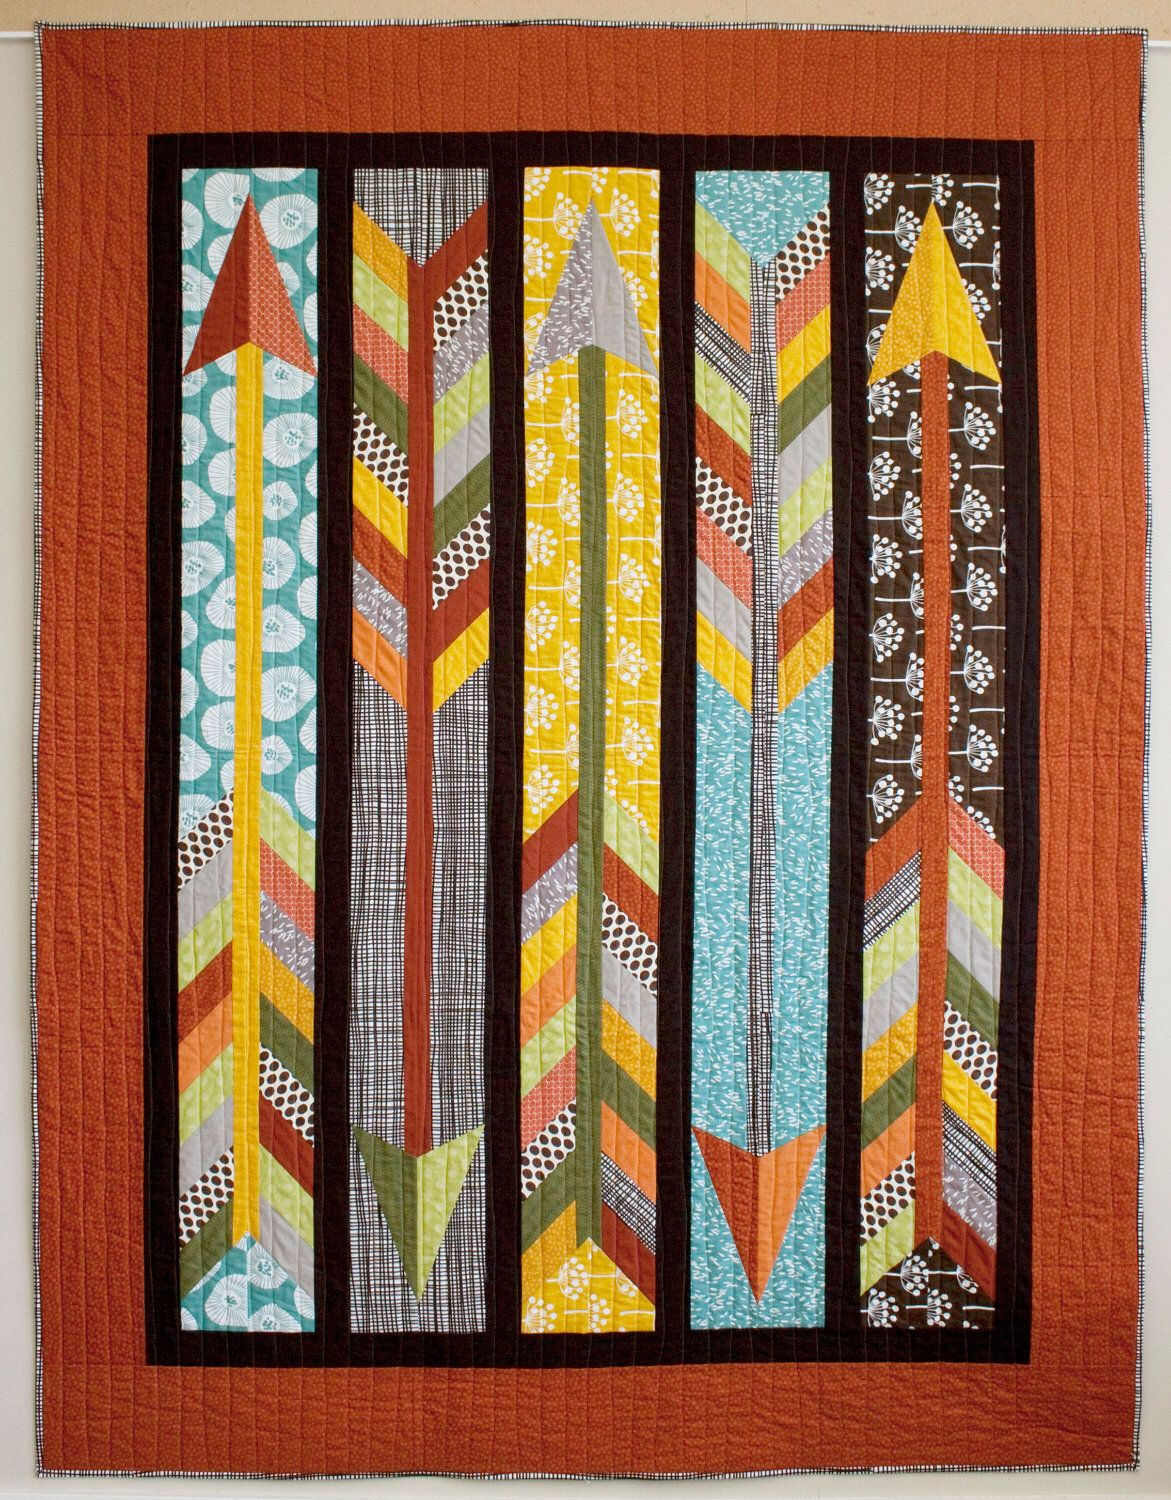 Straight as an Arrow PDF Quilt Pattern by NOTyourrunofthemill on Etsy https://www.etsy.com/listing/104551330/straight-as-an-arrow-pdf-quilt-pattern